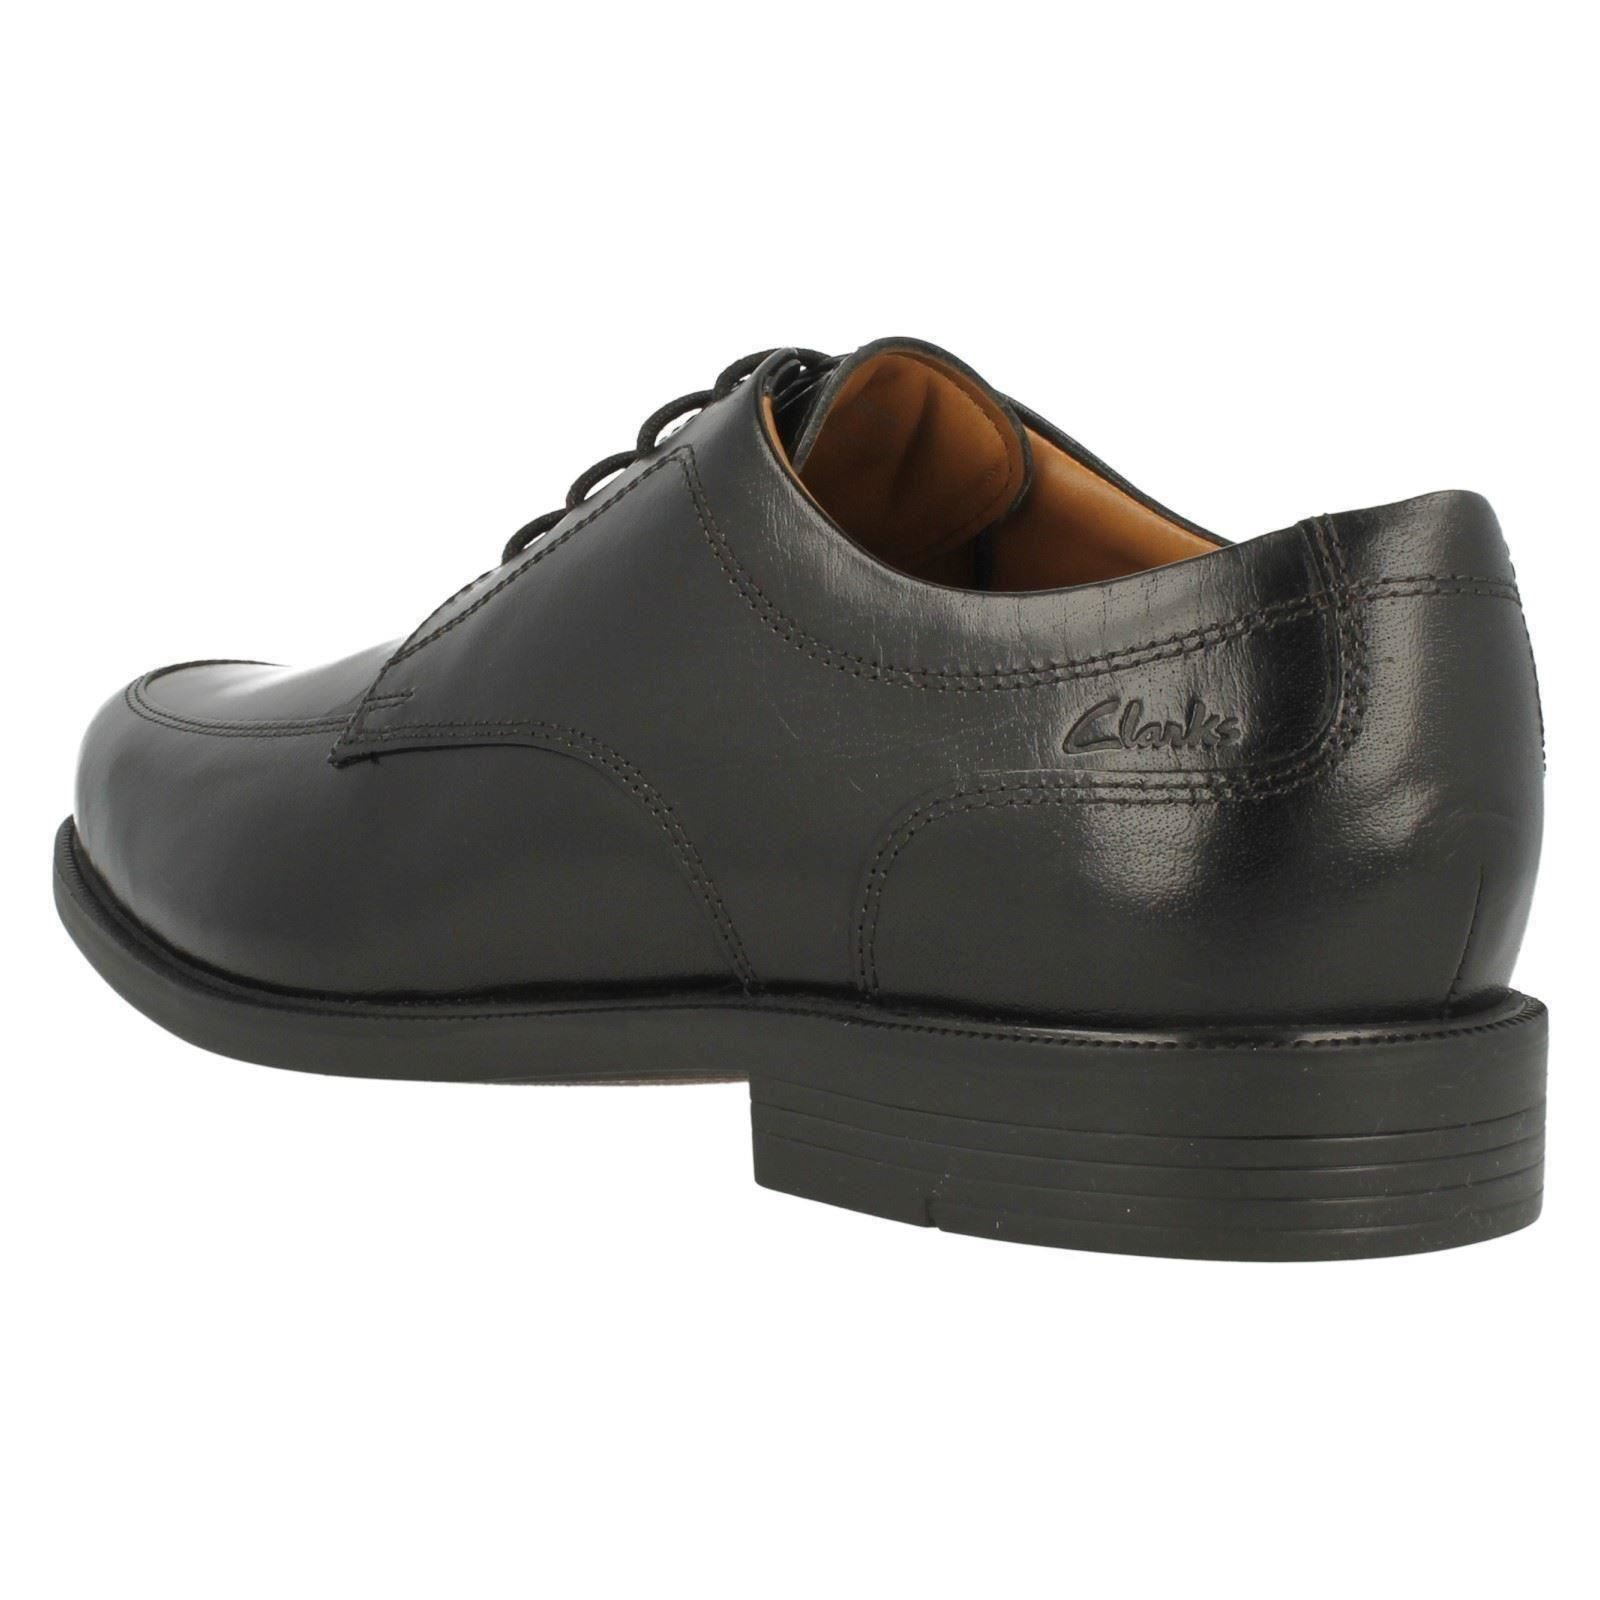 Beeston Uomo Clarks Formal Schuhes Beeston  Apron 72d84a